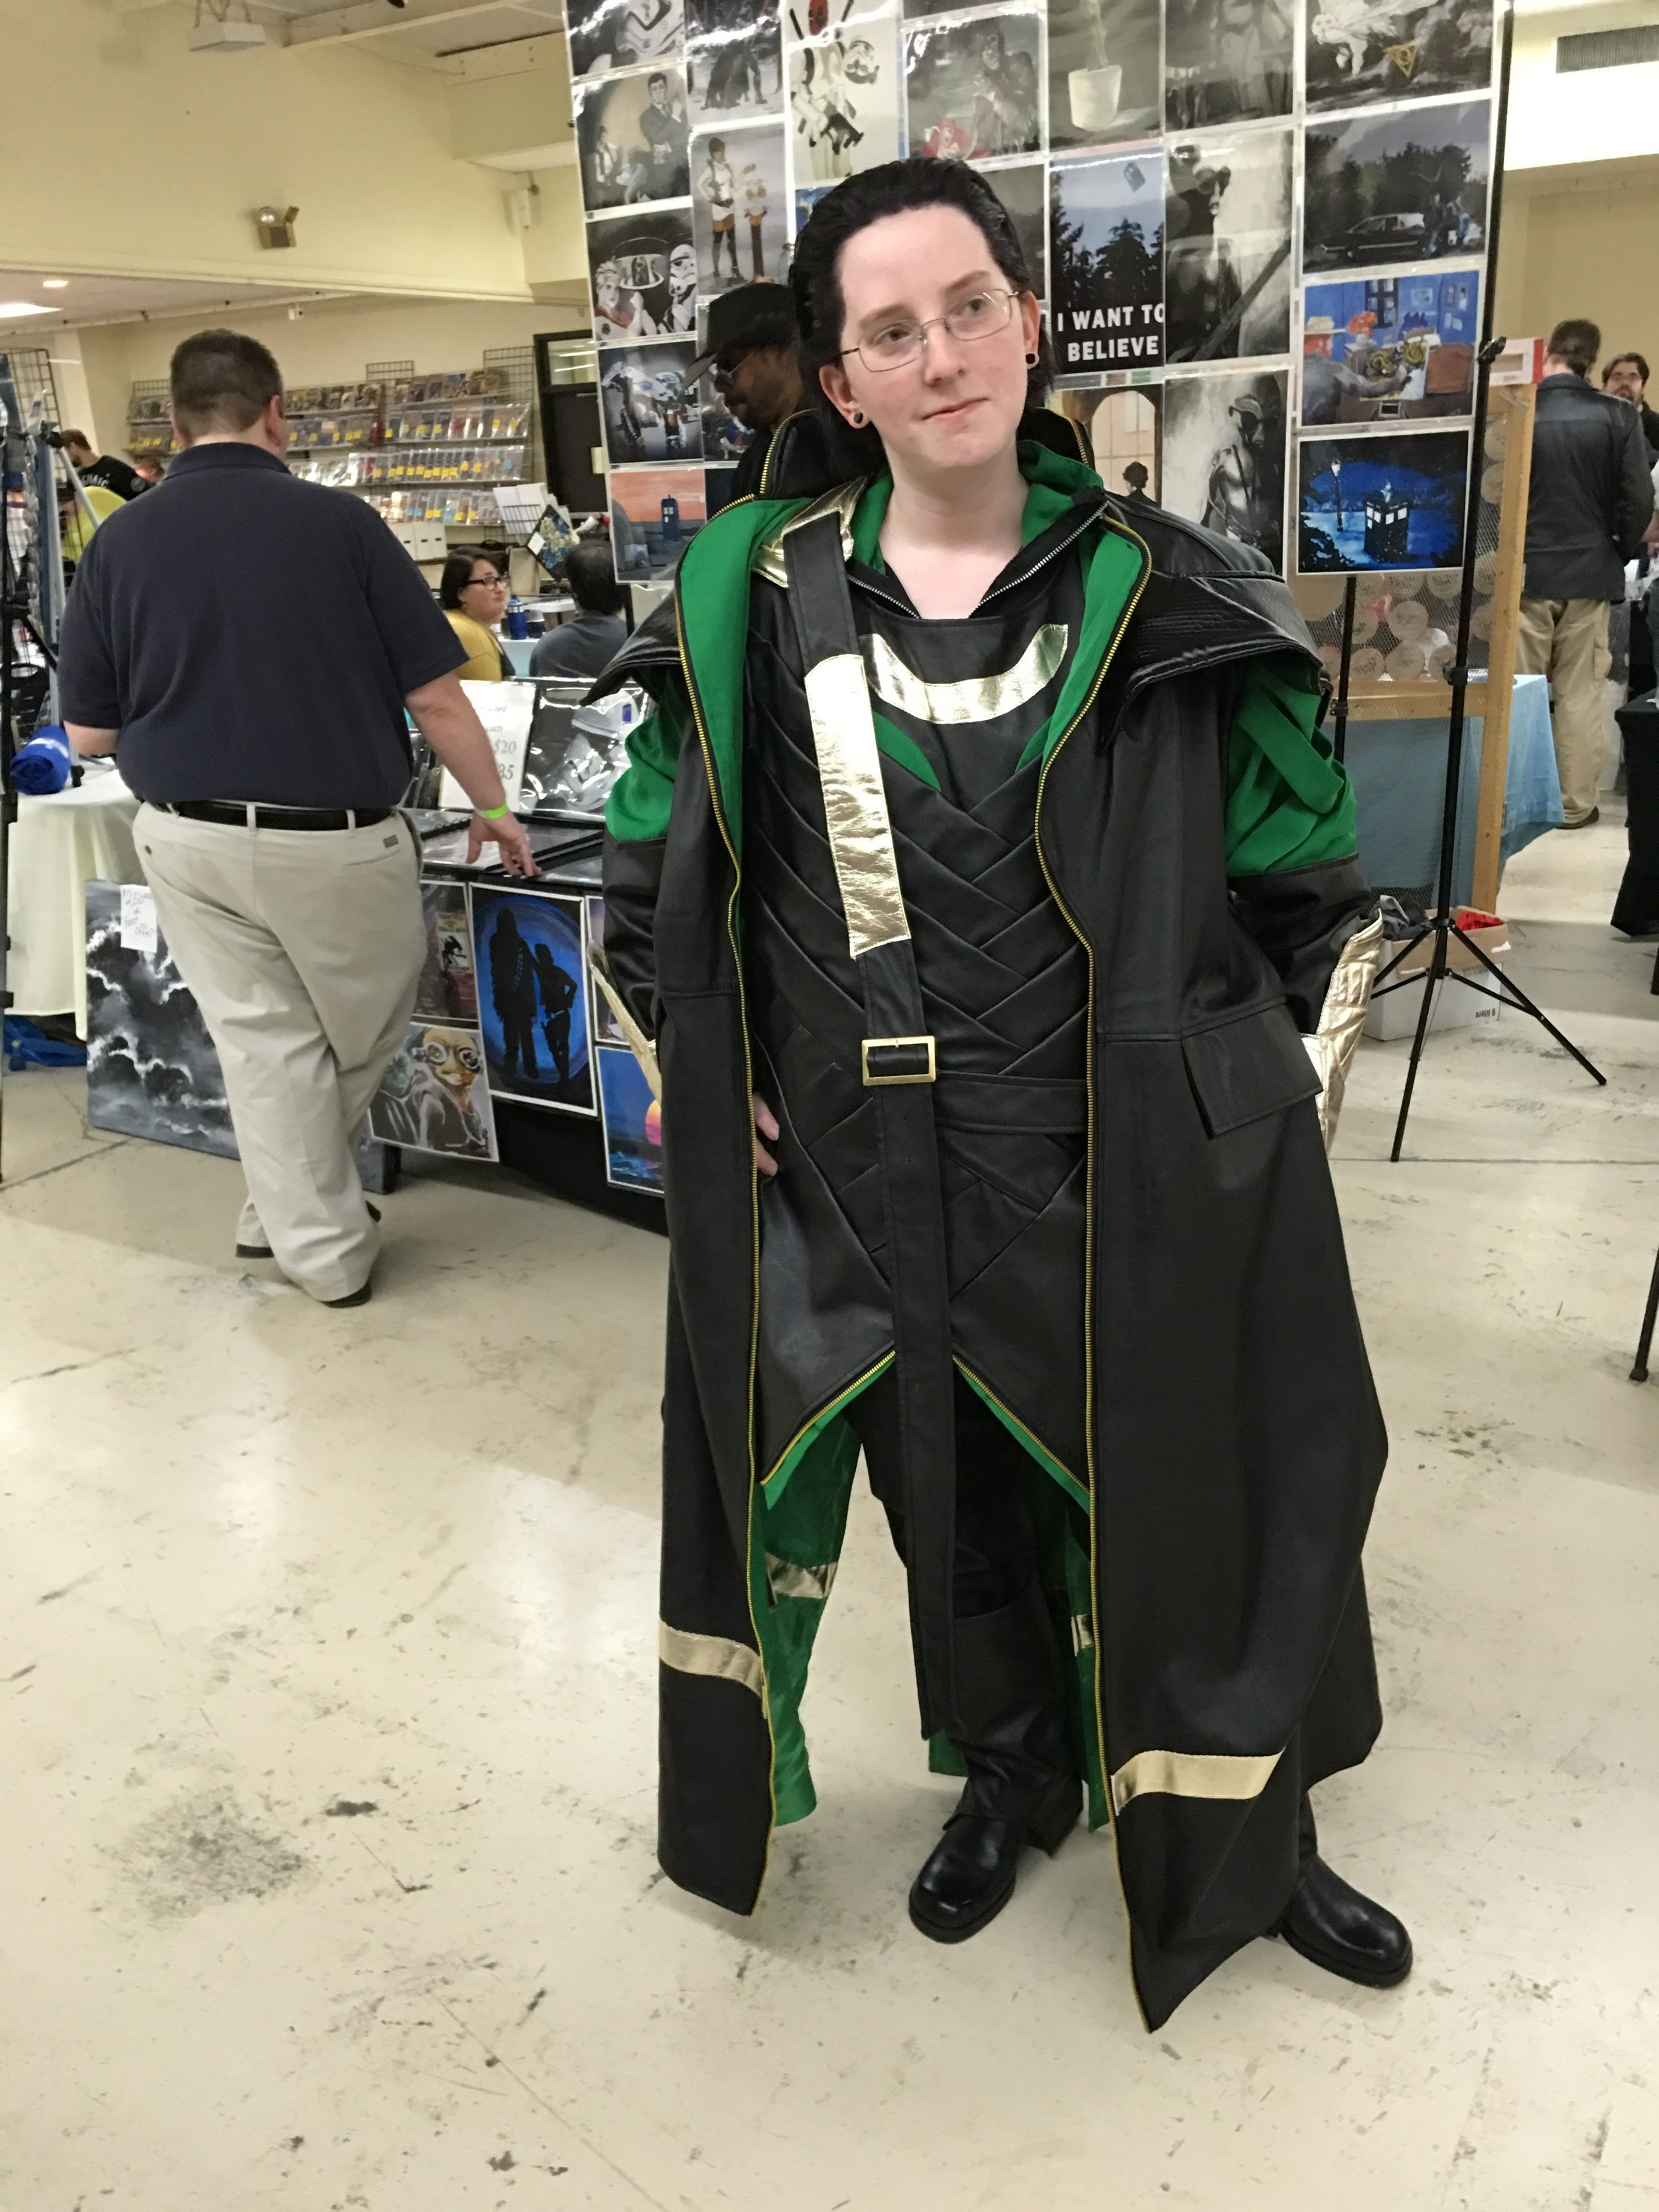 We spotted a Loki cosplayer, but couldn't figure out what mischief she had planned...